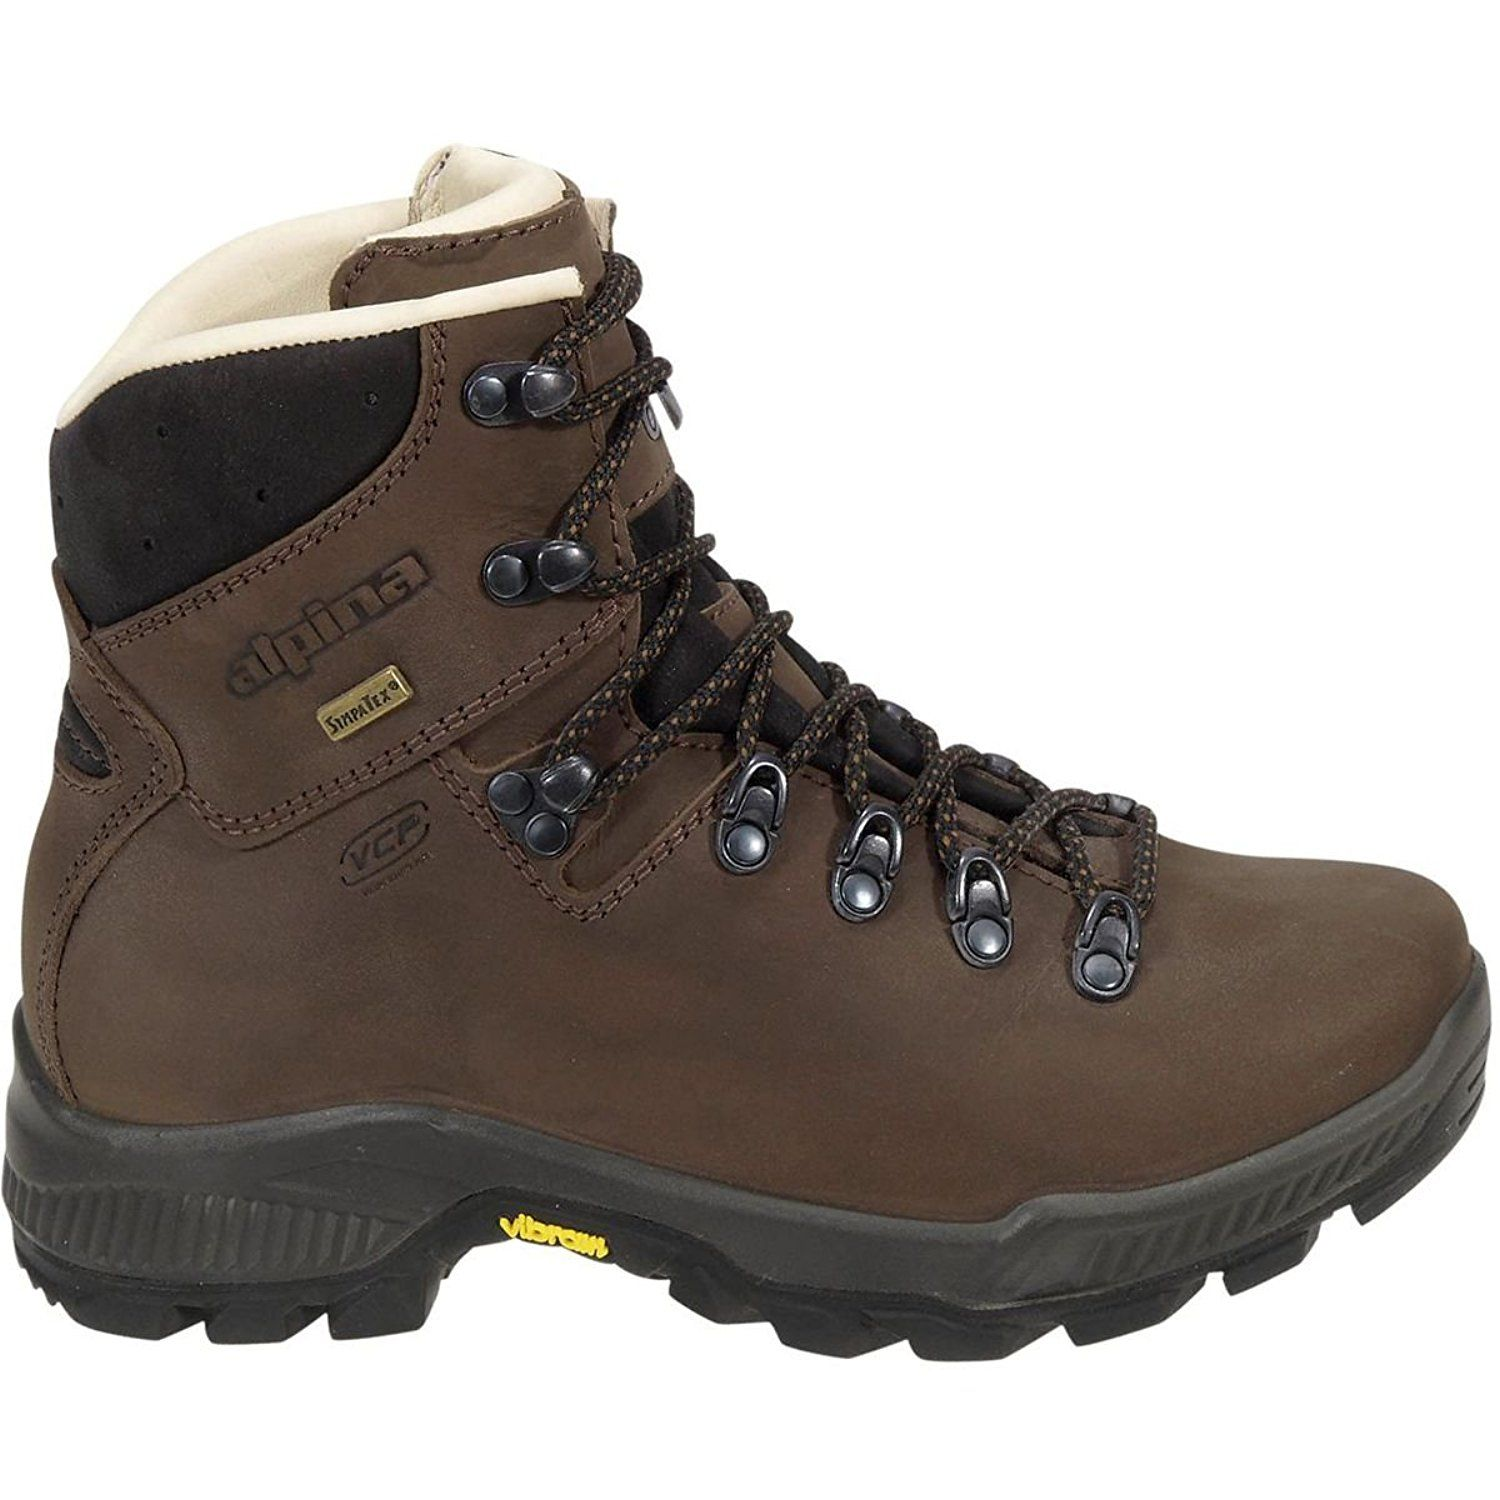 43d18433102 Alpina Tibet Backpacking Boot - Women's -- To view further for this ...